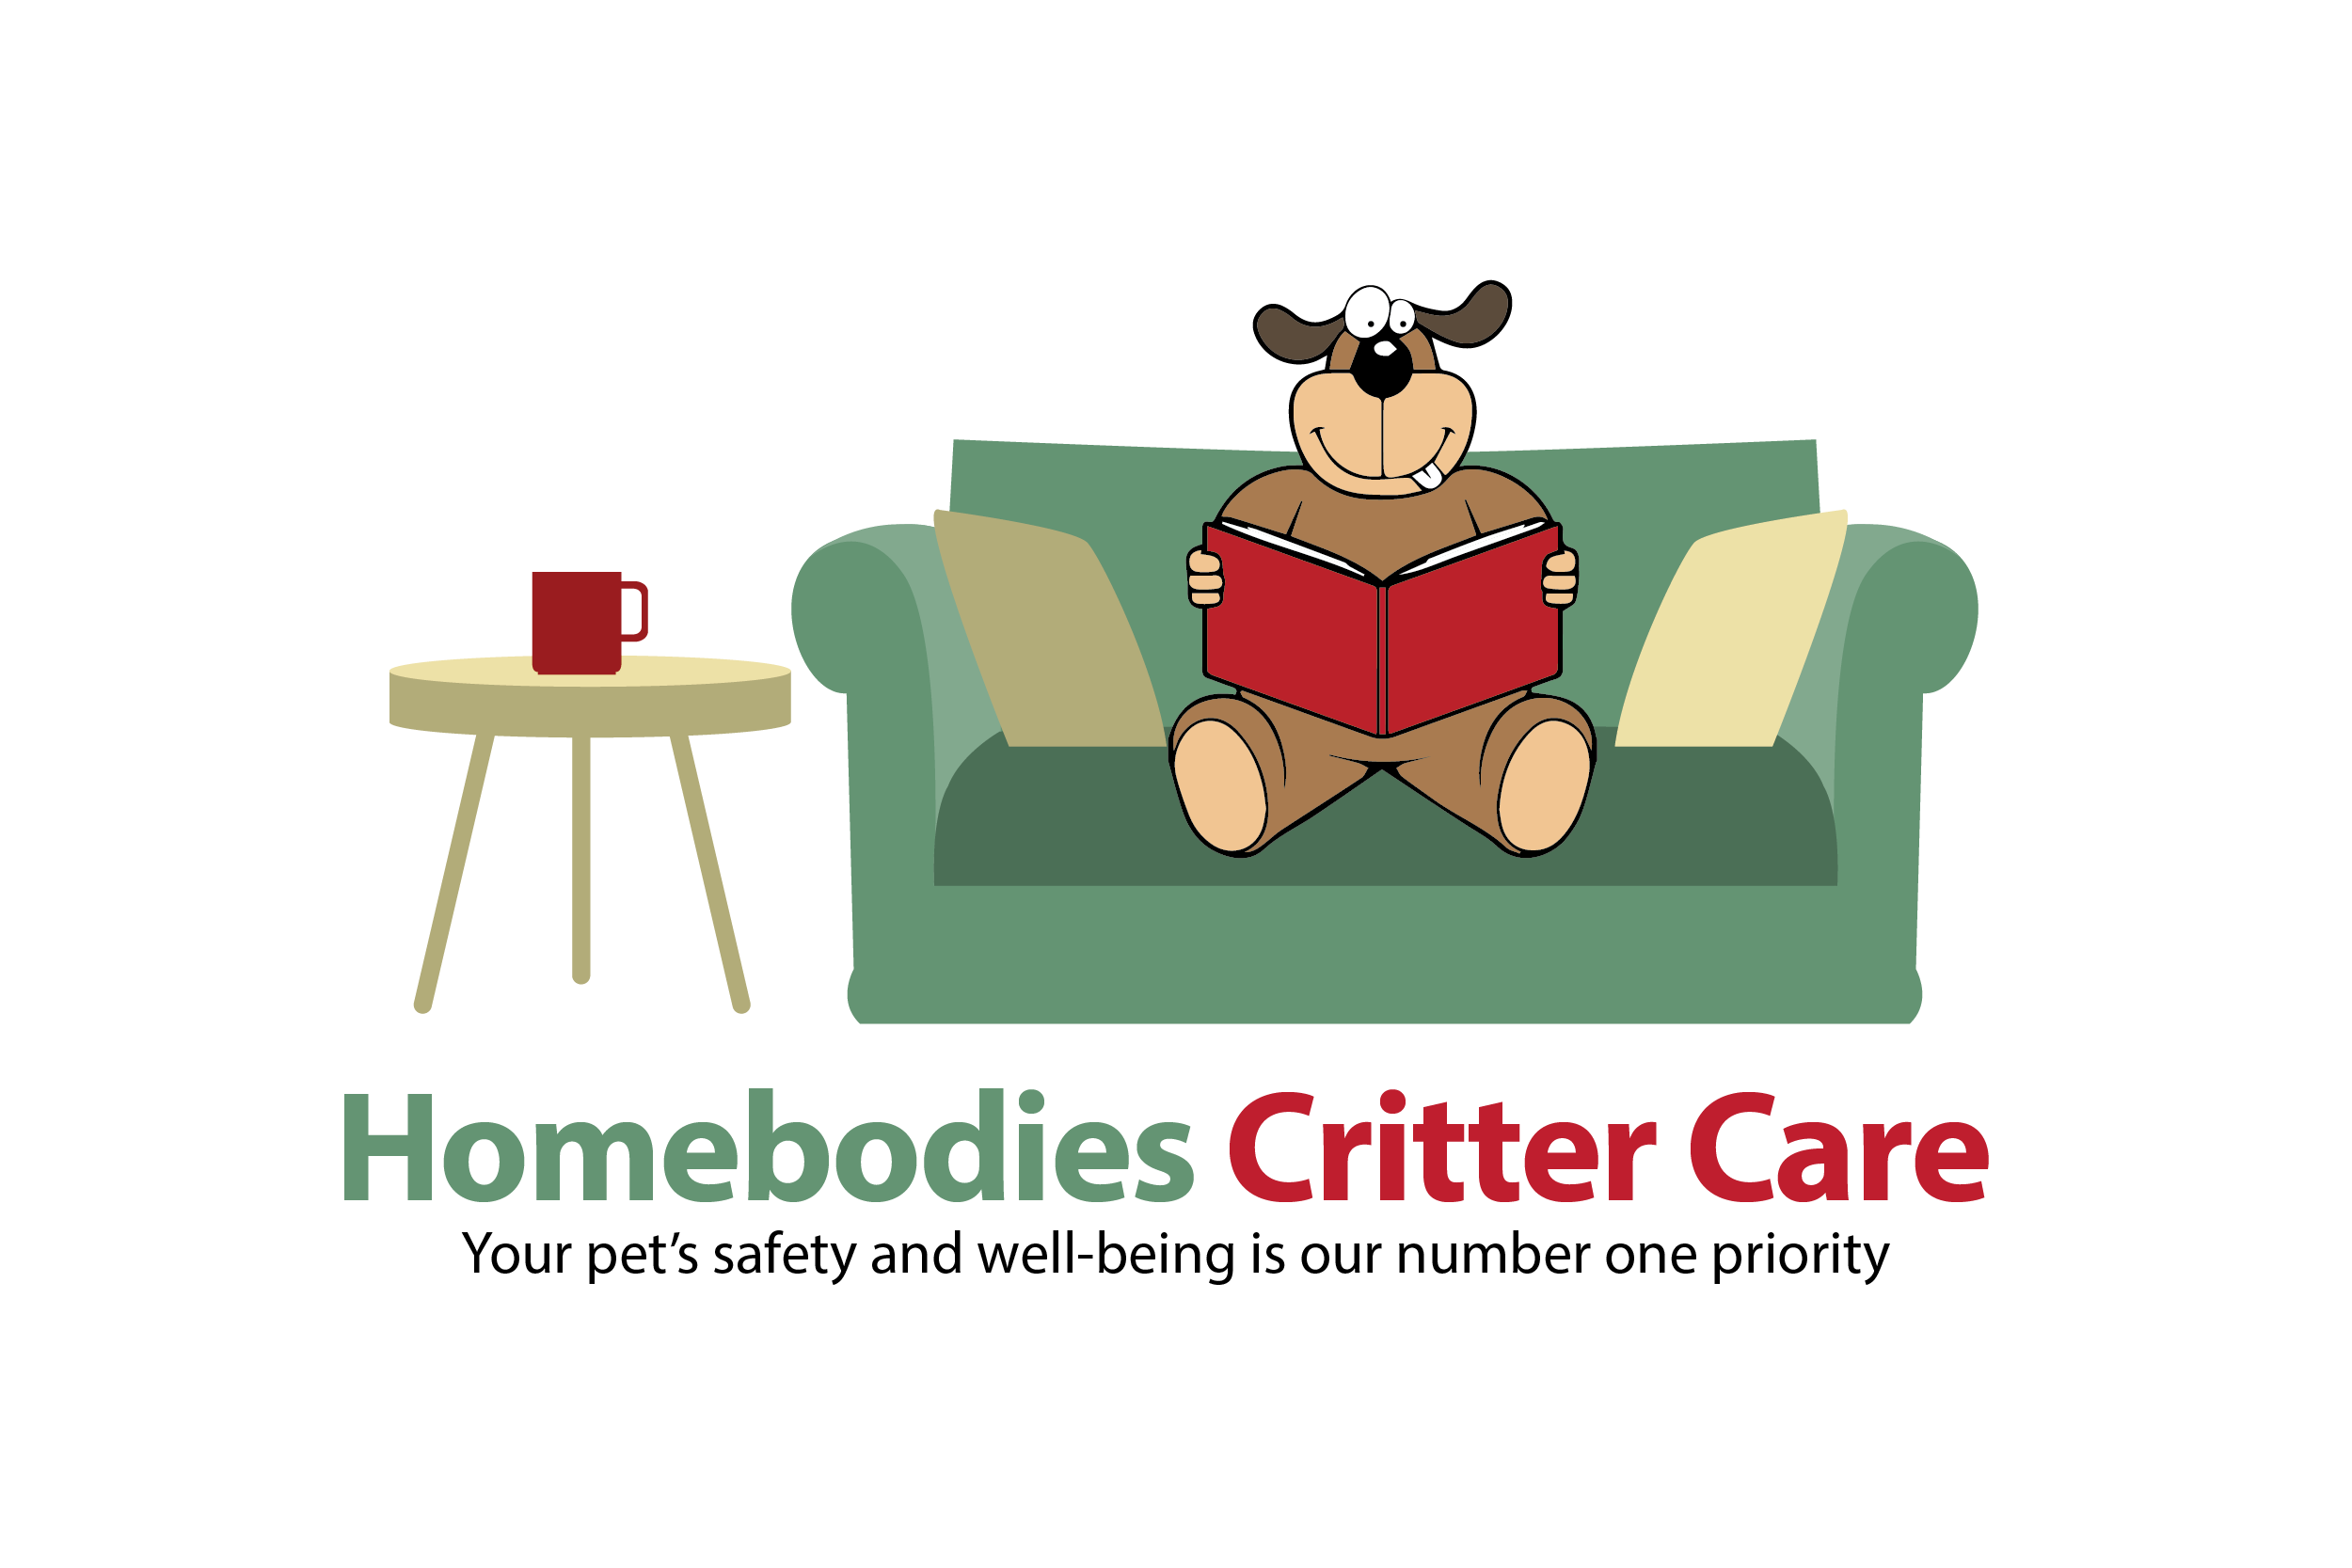 Pet clipart home pet. Homebodiescc logo png at